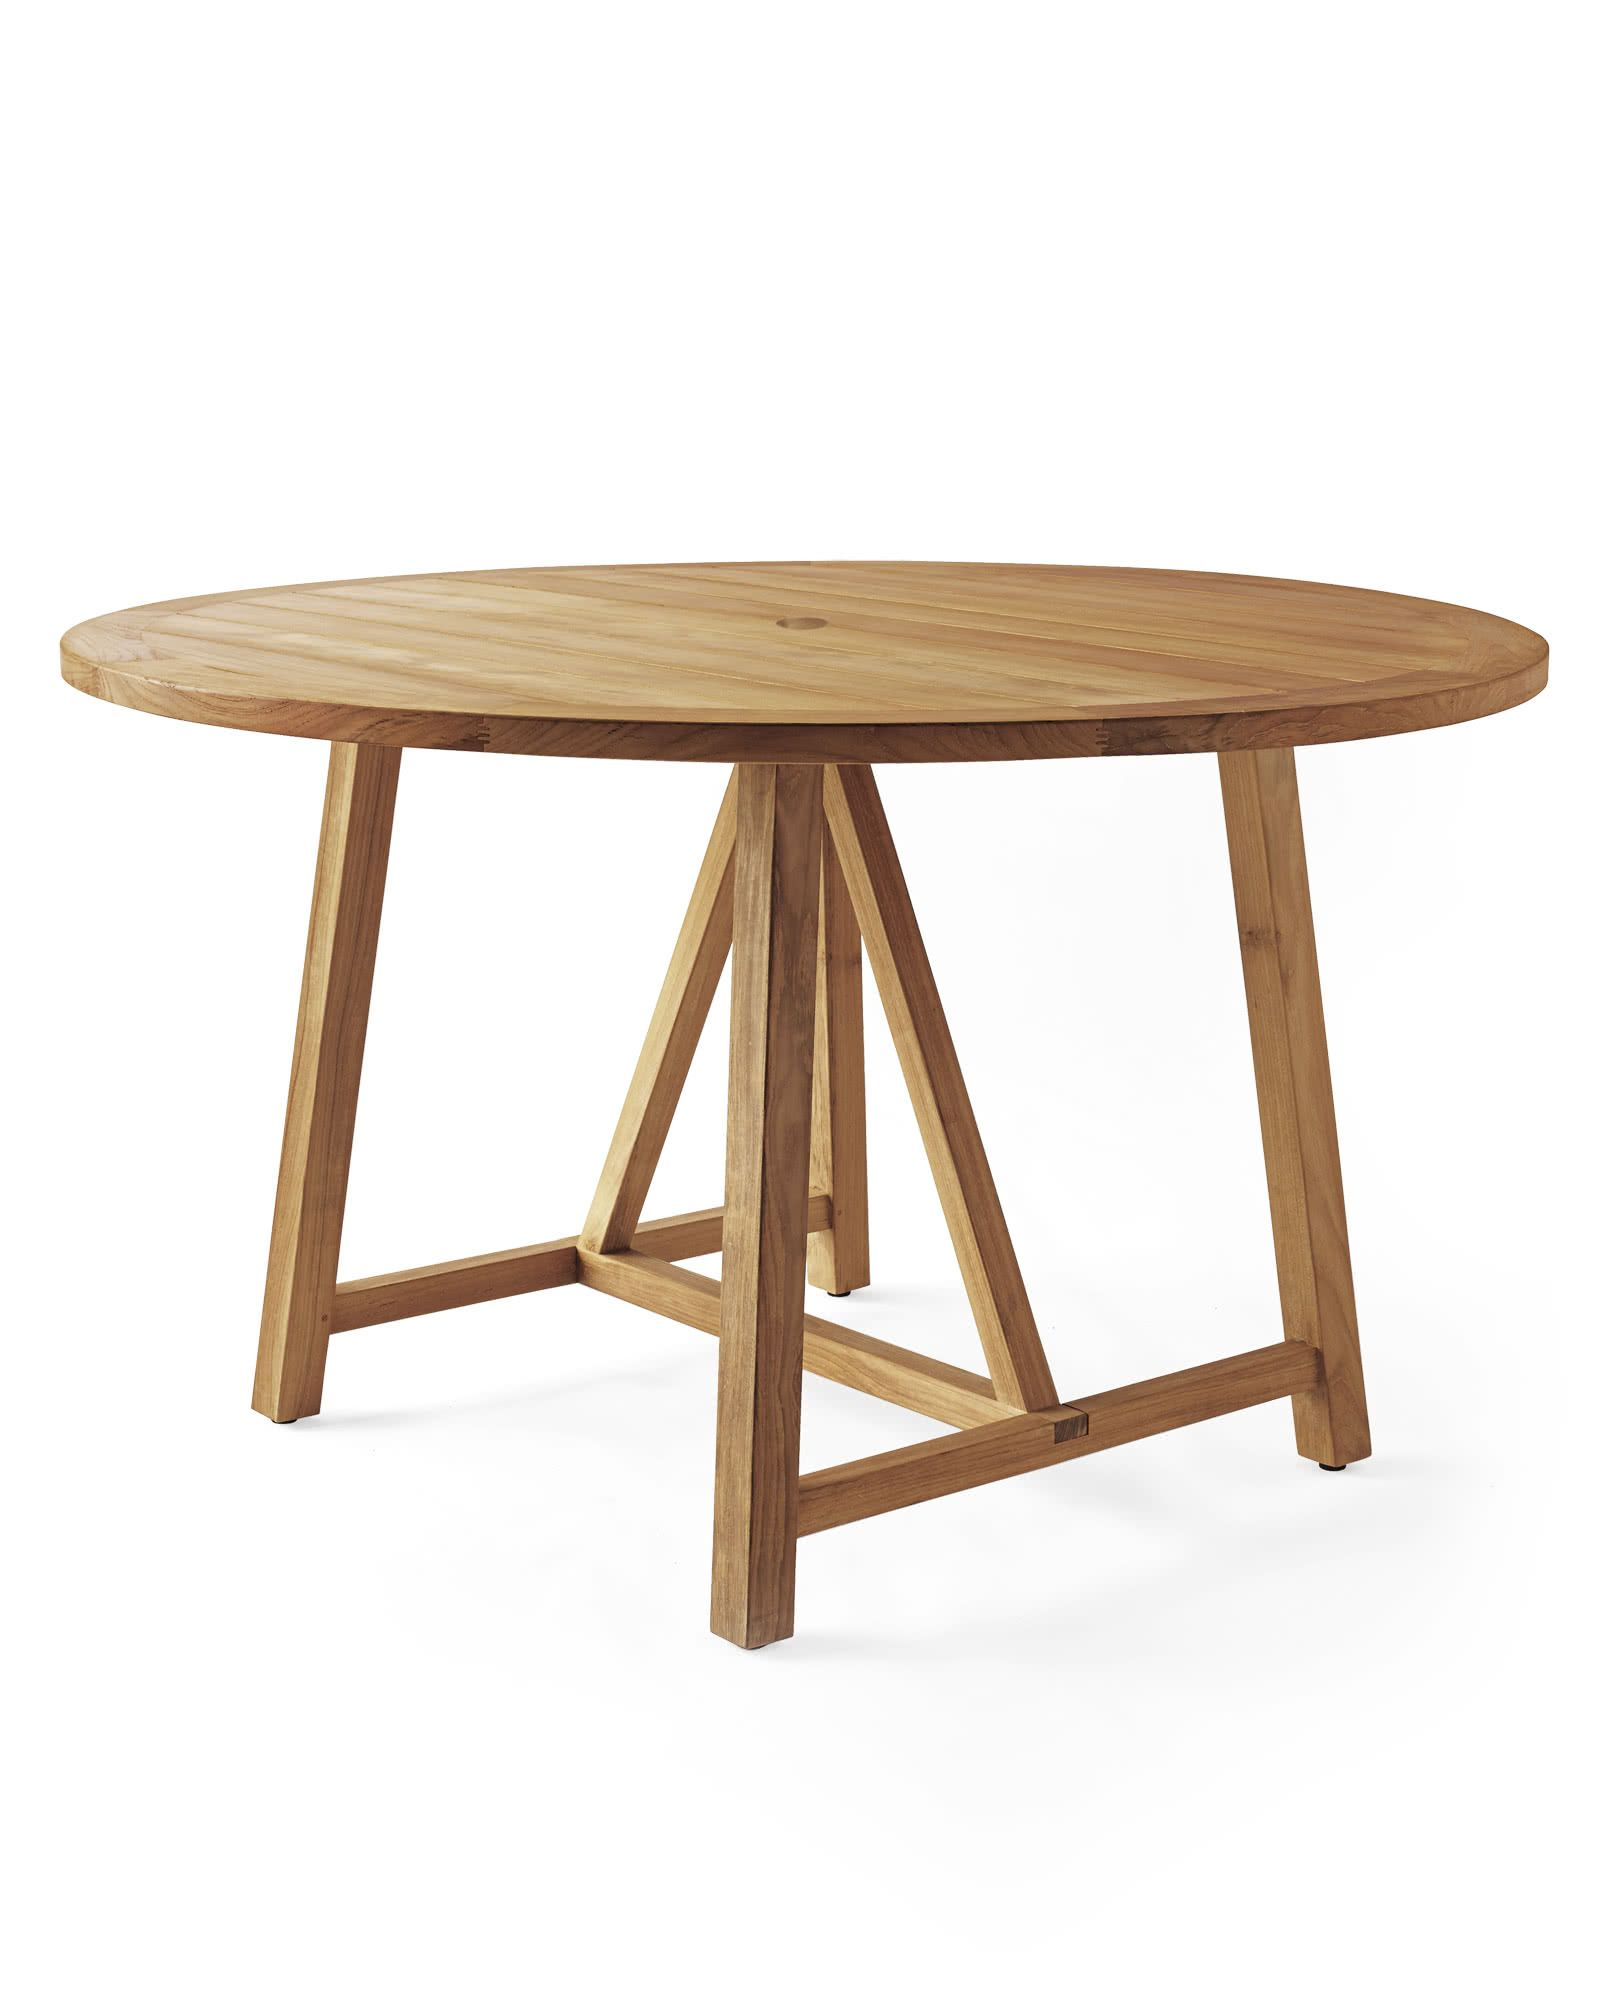 Crosby Teak Round Dining Table Natural Teak Dining Table